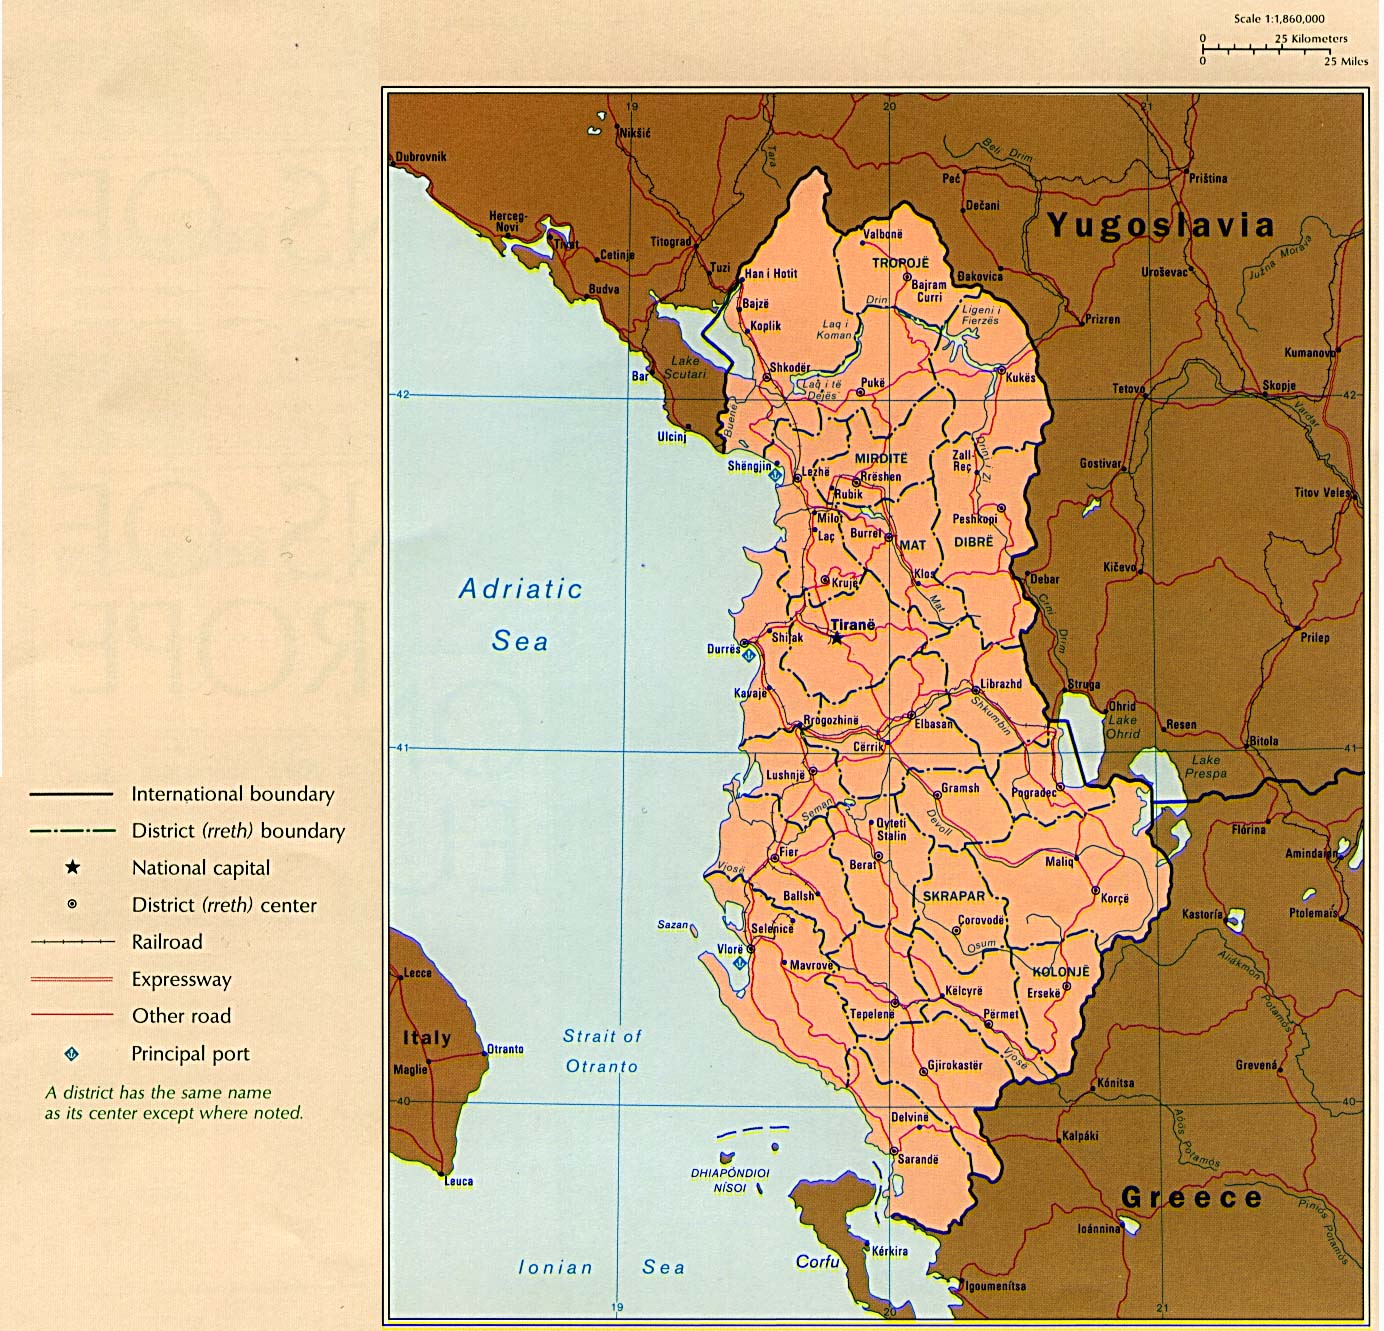 Atlas of Eastern Europe PerryCasta eda Map Collection UT – Eastern Euope Map